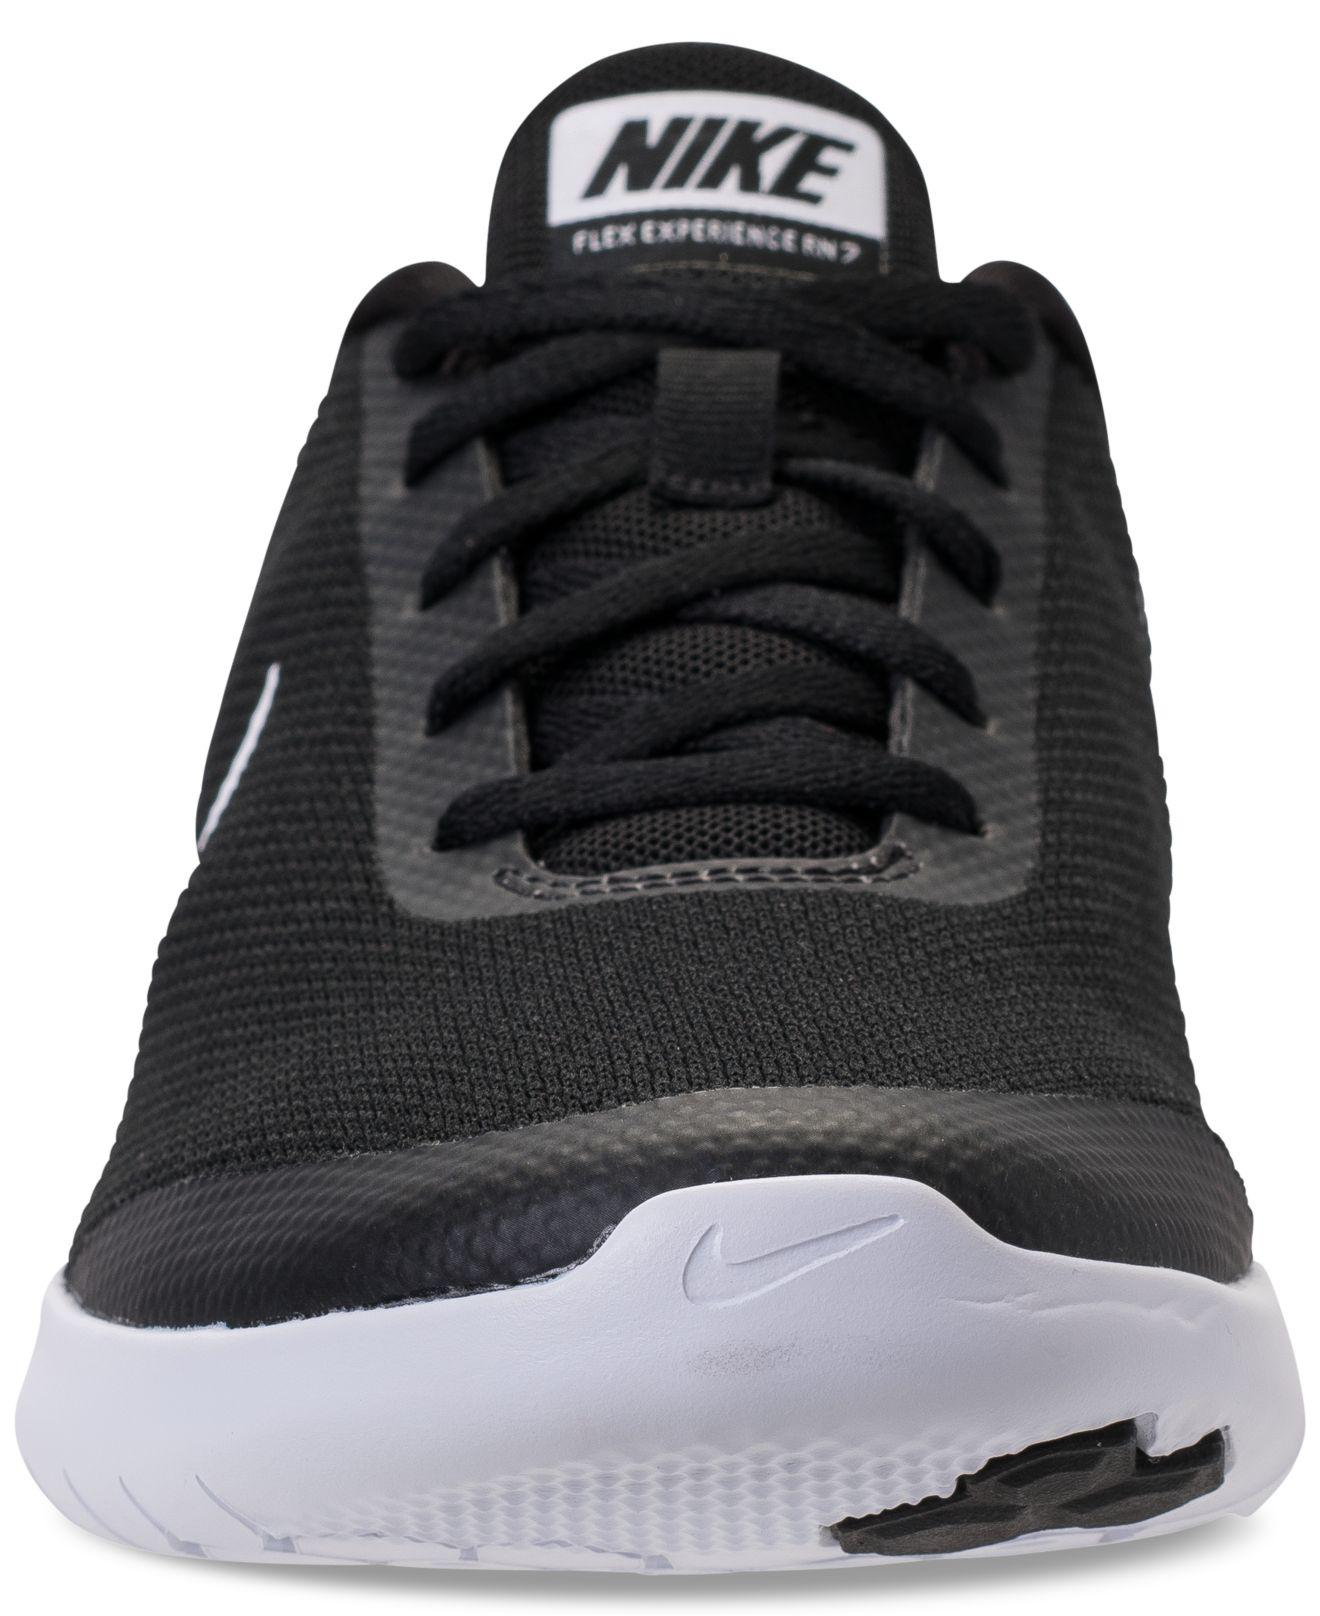 sports shoes c1030 c4f63 Nike - Black Flex Experience Run 7 Running Sneakers From Finish Line -  Lyst. View fullscreen